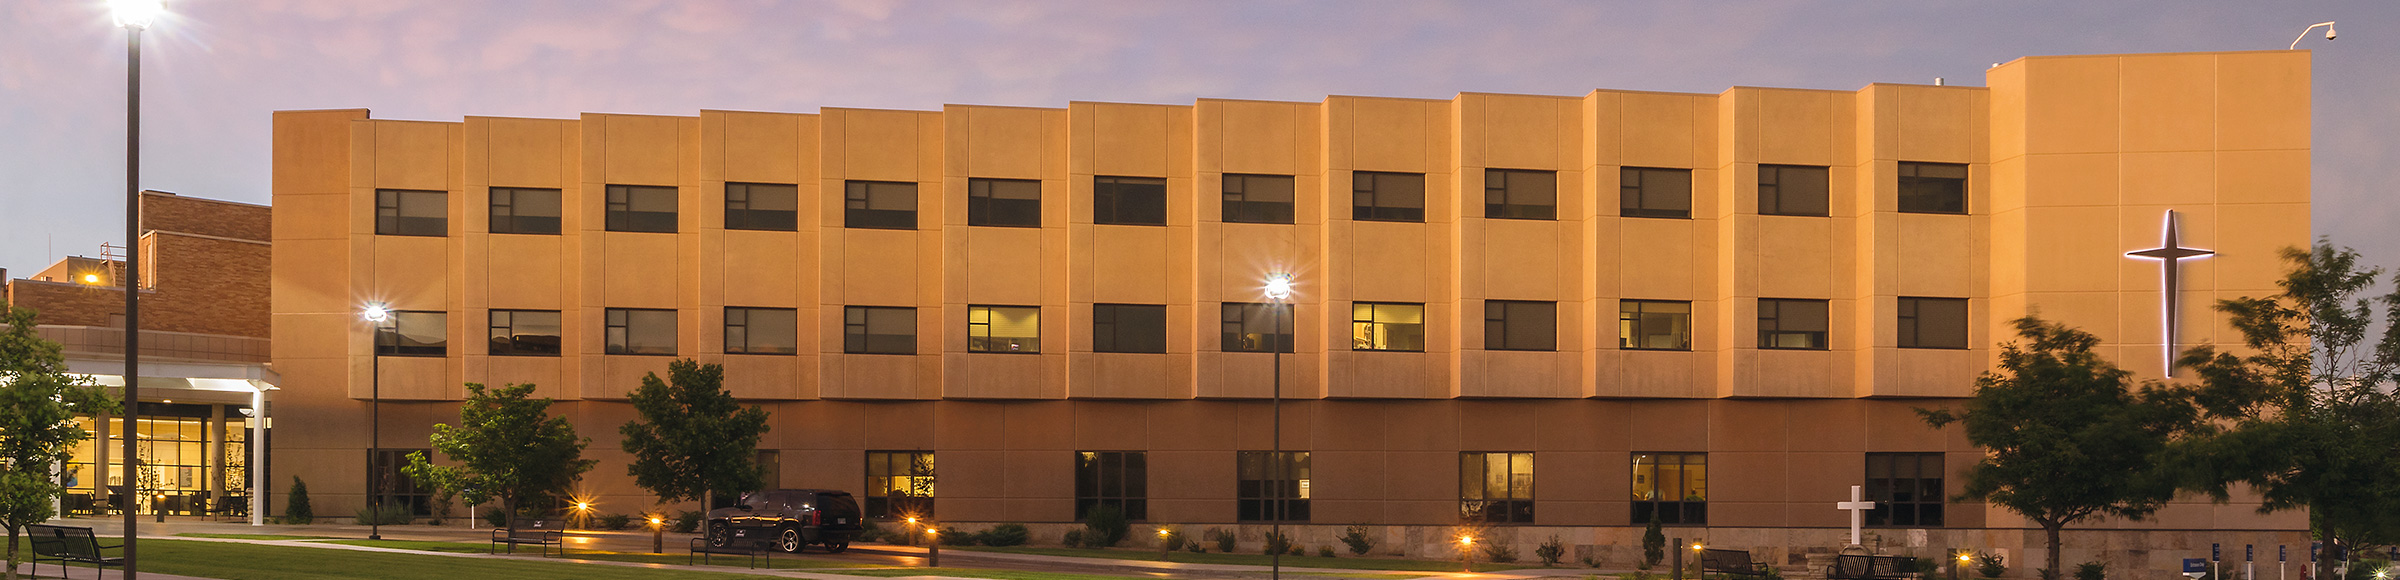 Image Of St. Catherine Hospital Building. 401 E Spruce St. Garden City,  Kansas 67846